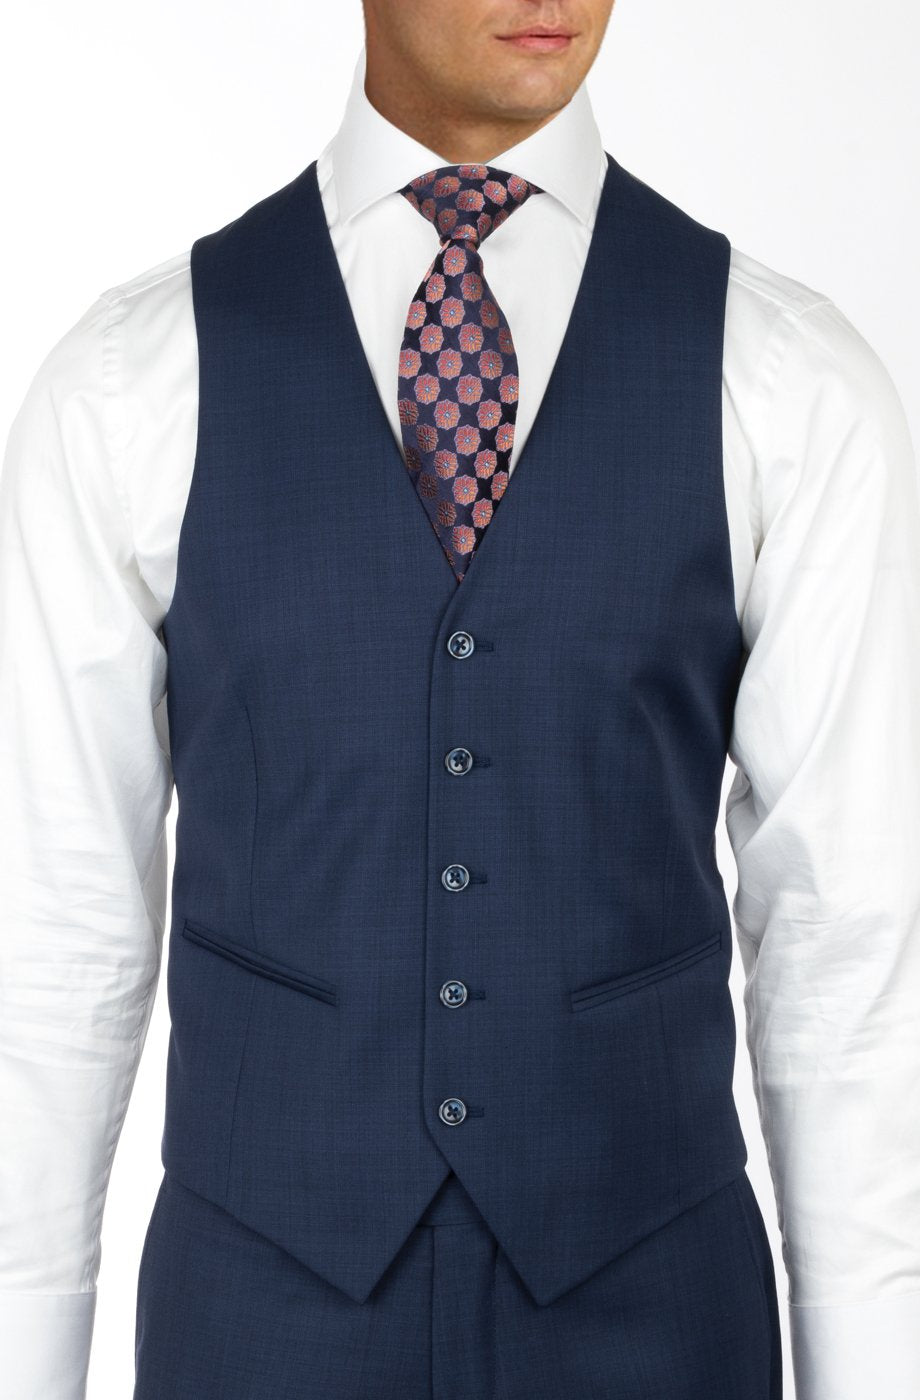 Tiglio Luxe Tufo, Modern Fit, BLUE SHARKSKIN, Pure Wool Suit & Vest TS4066/2